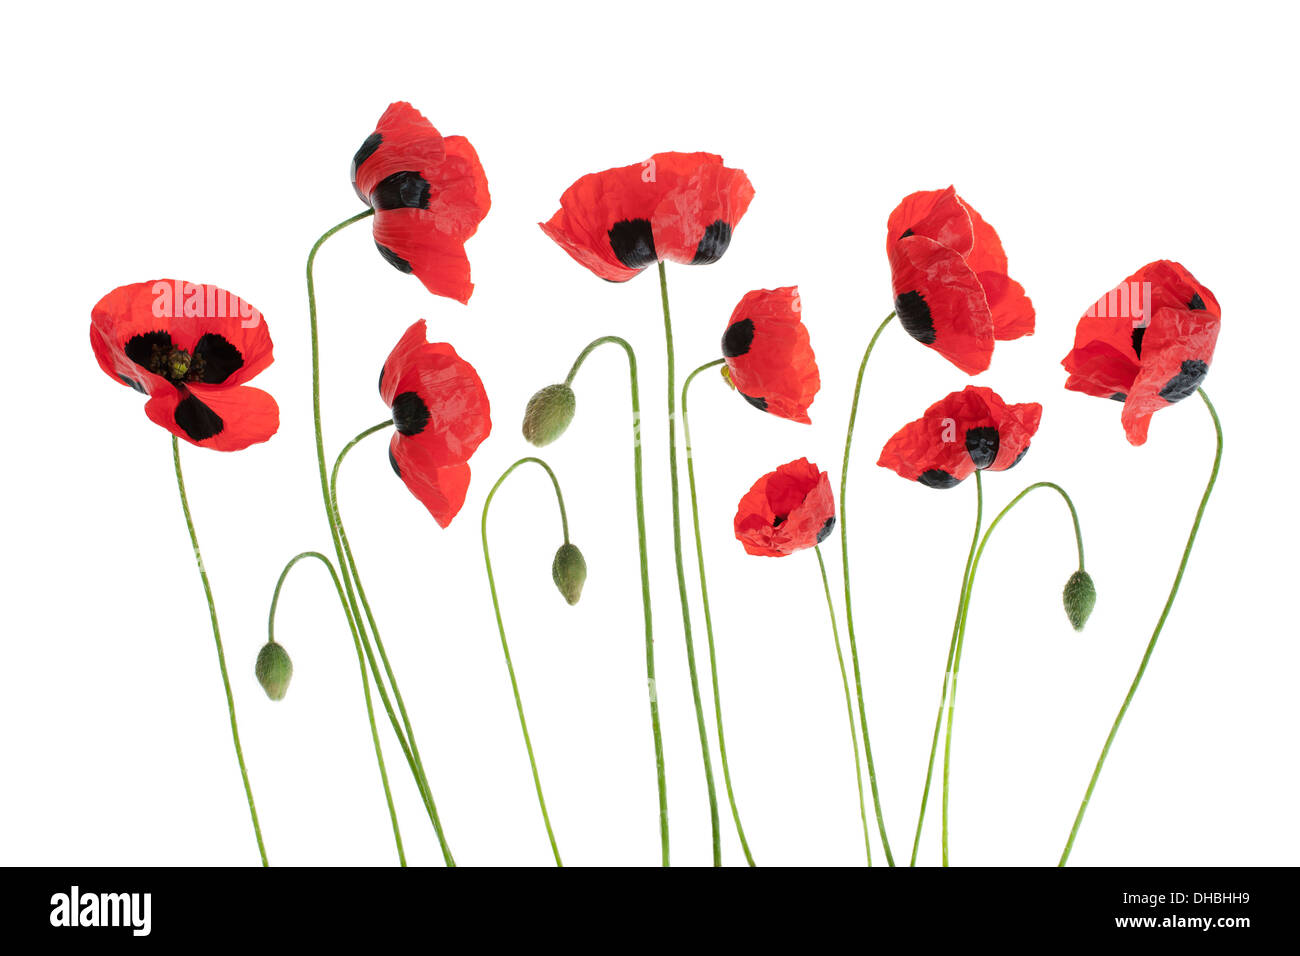 red poppy flowers in a row isolated on white background with shallow depth of field. - Stock Image